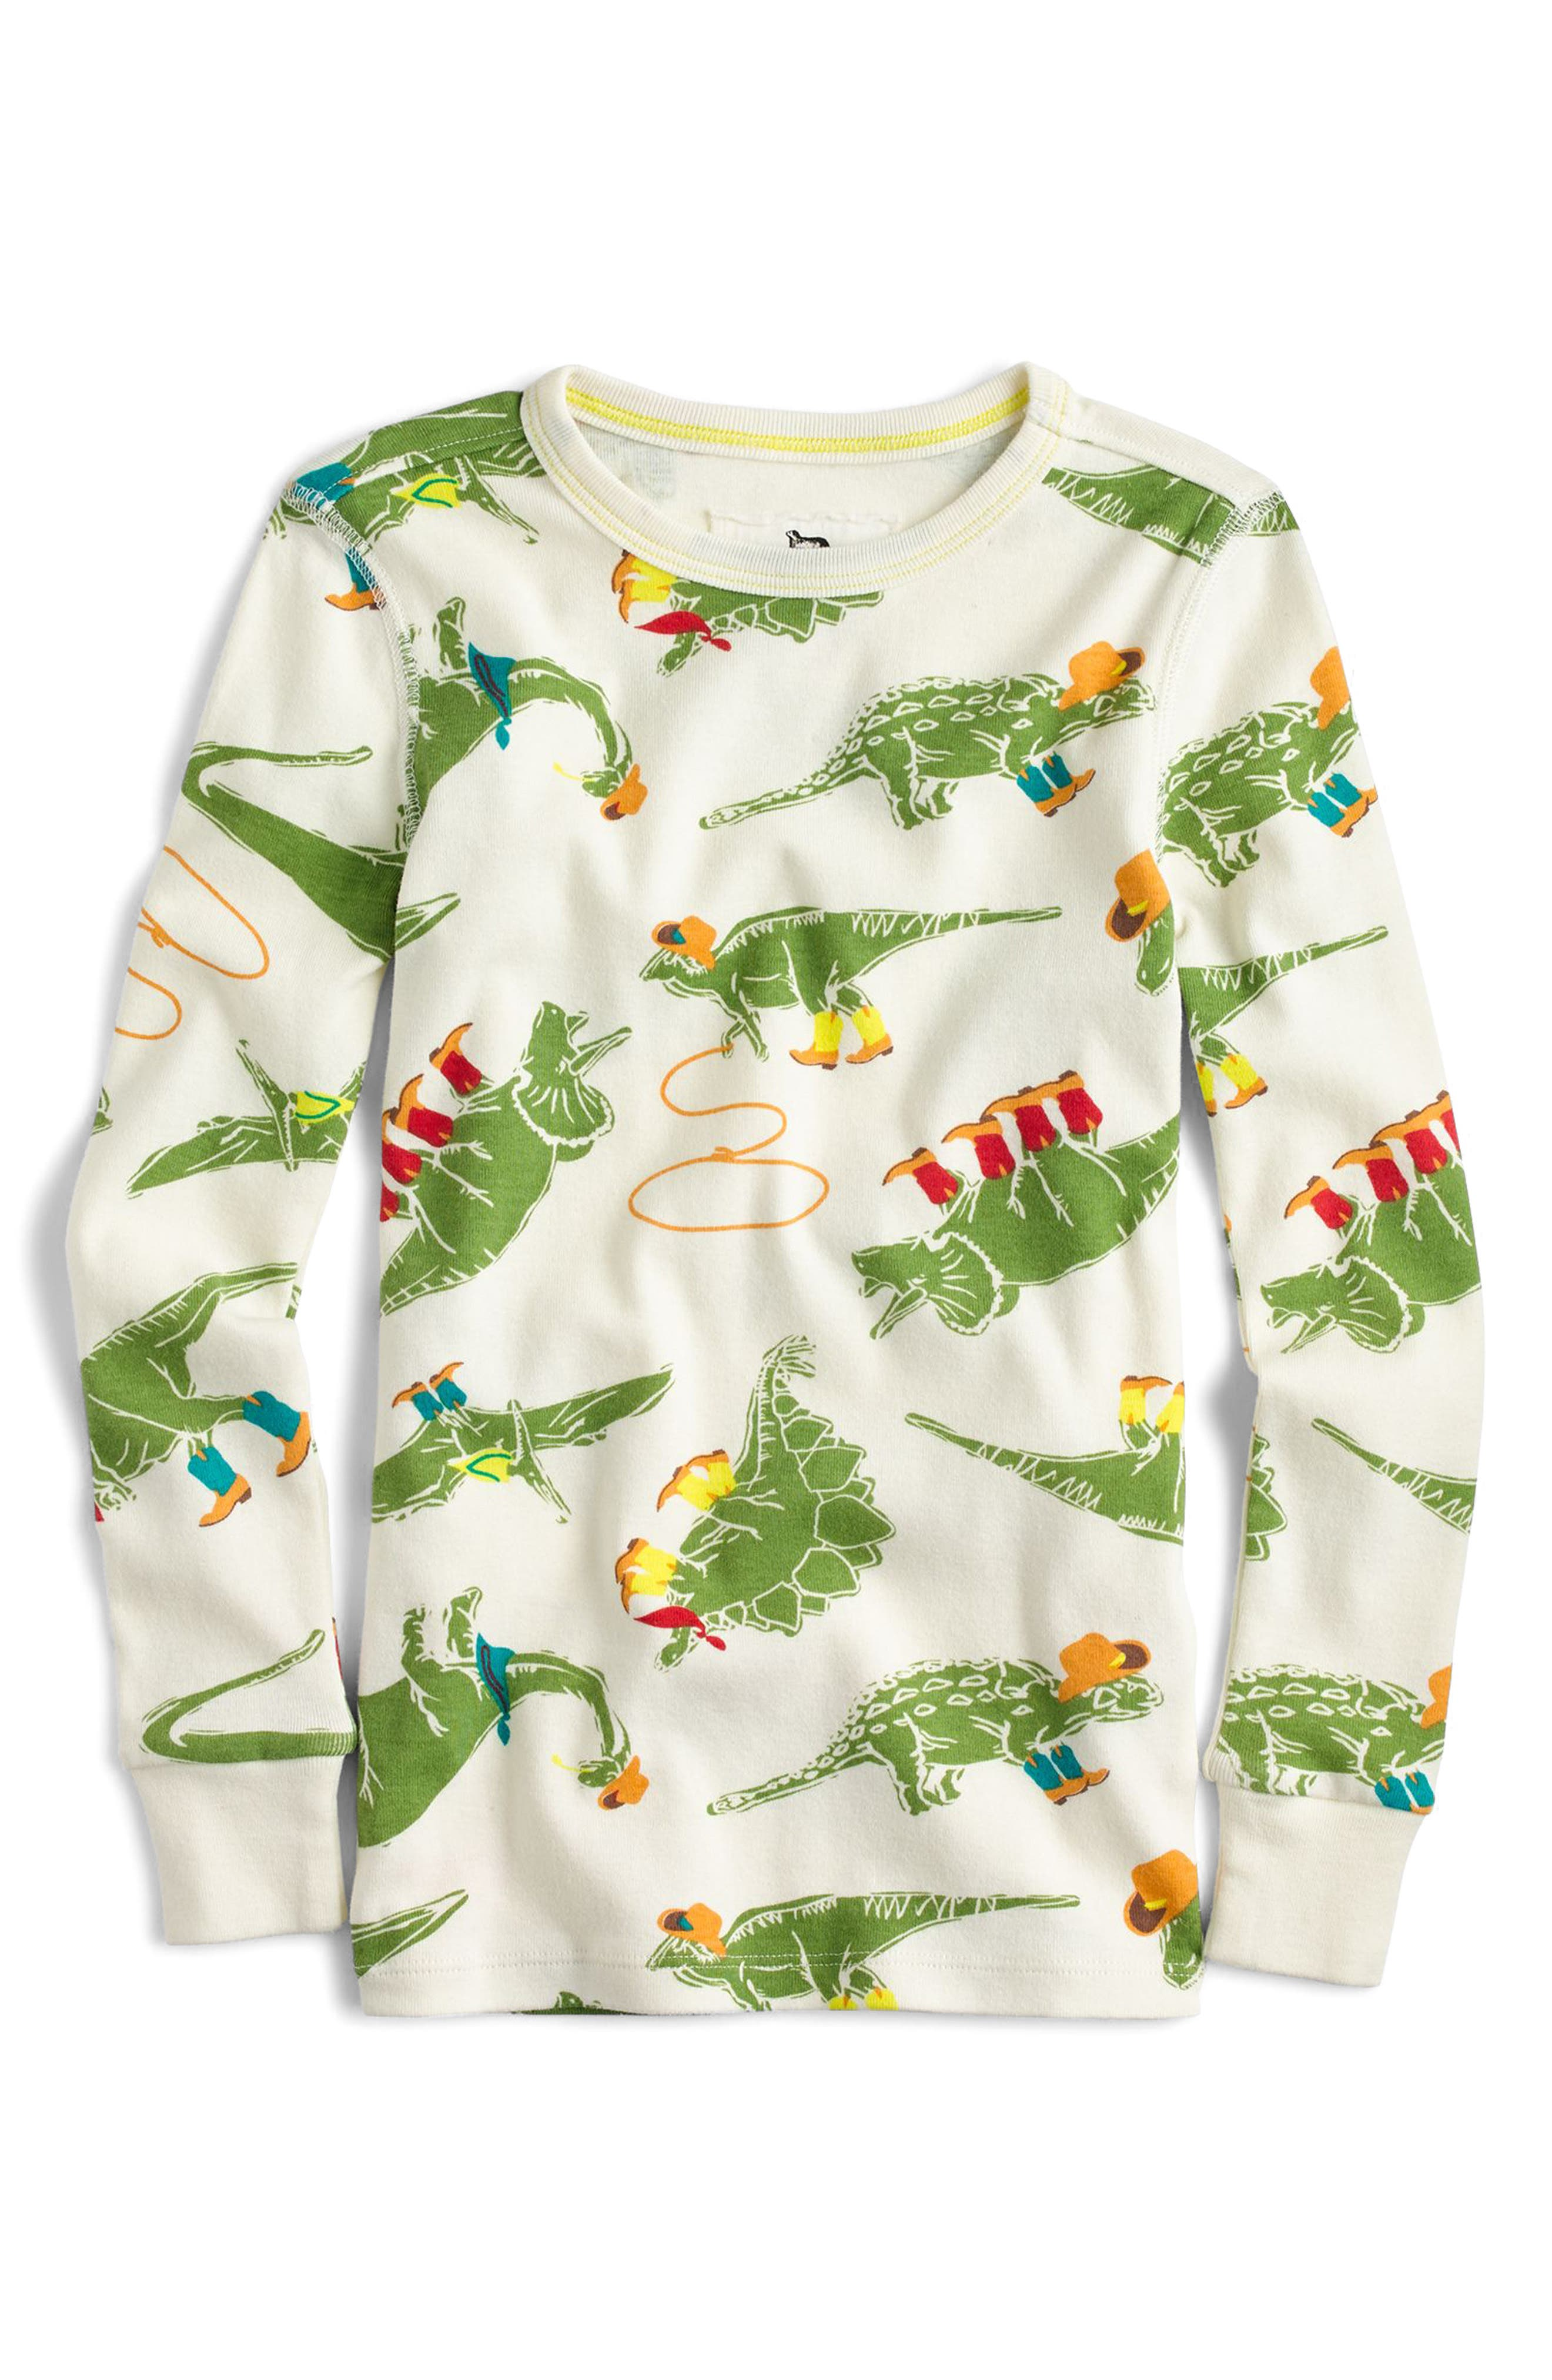 Cowboy Dinosaur Print Fitted Two-Piece Pajamas,                             Main thumbnail 1, color,                             900